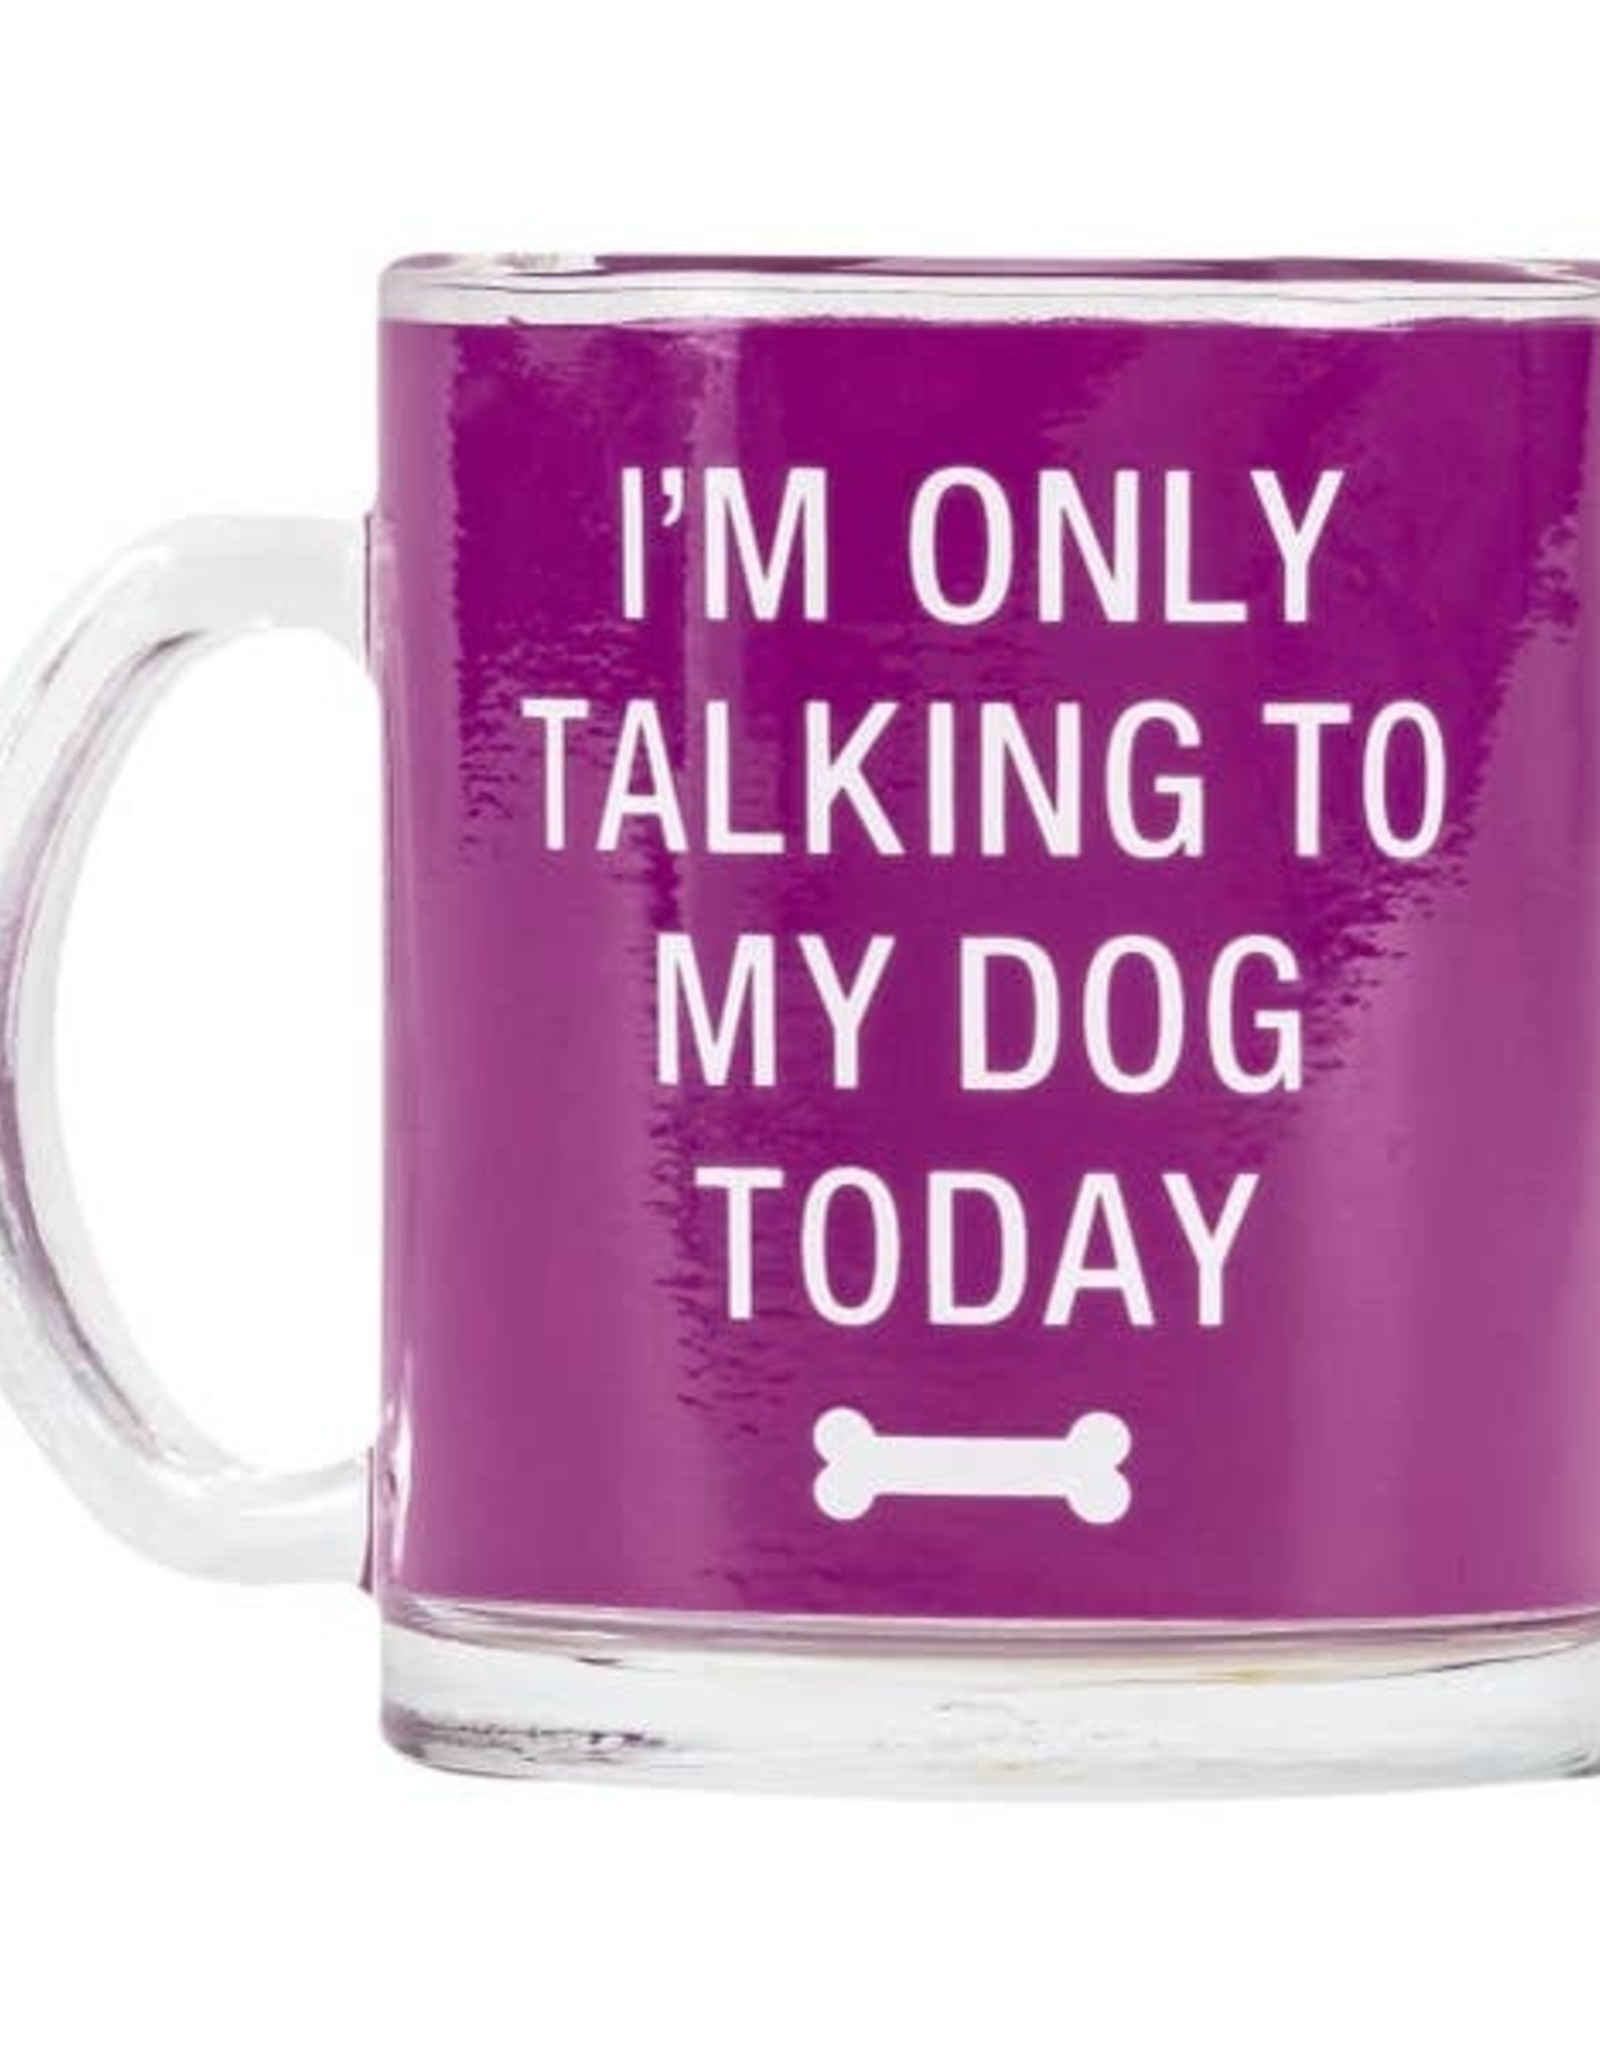 About Face Designs About Face Designs Glass Mug I'm Only Talking To My Dog Today